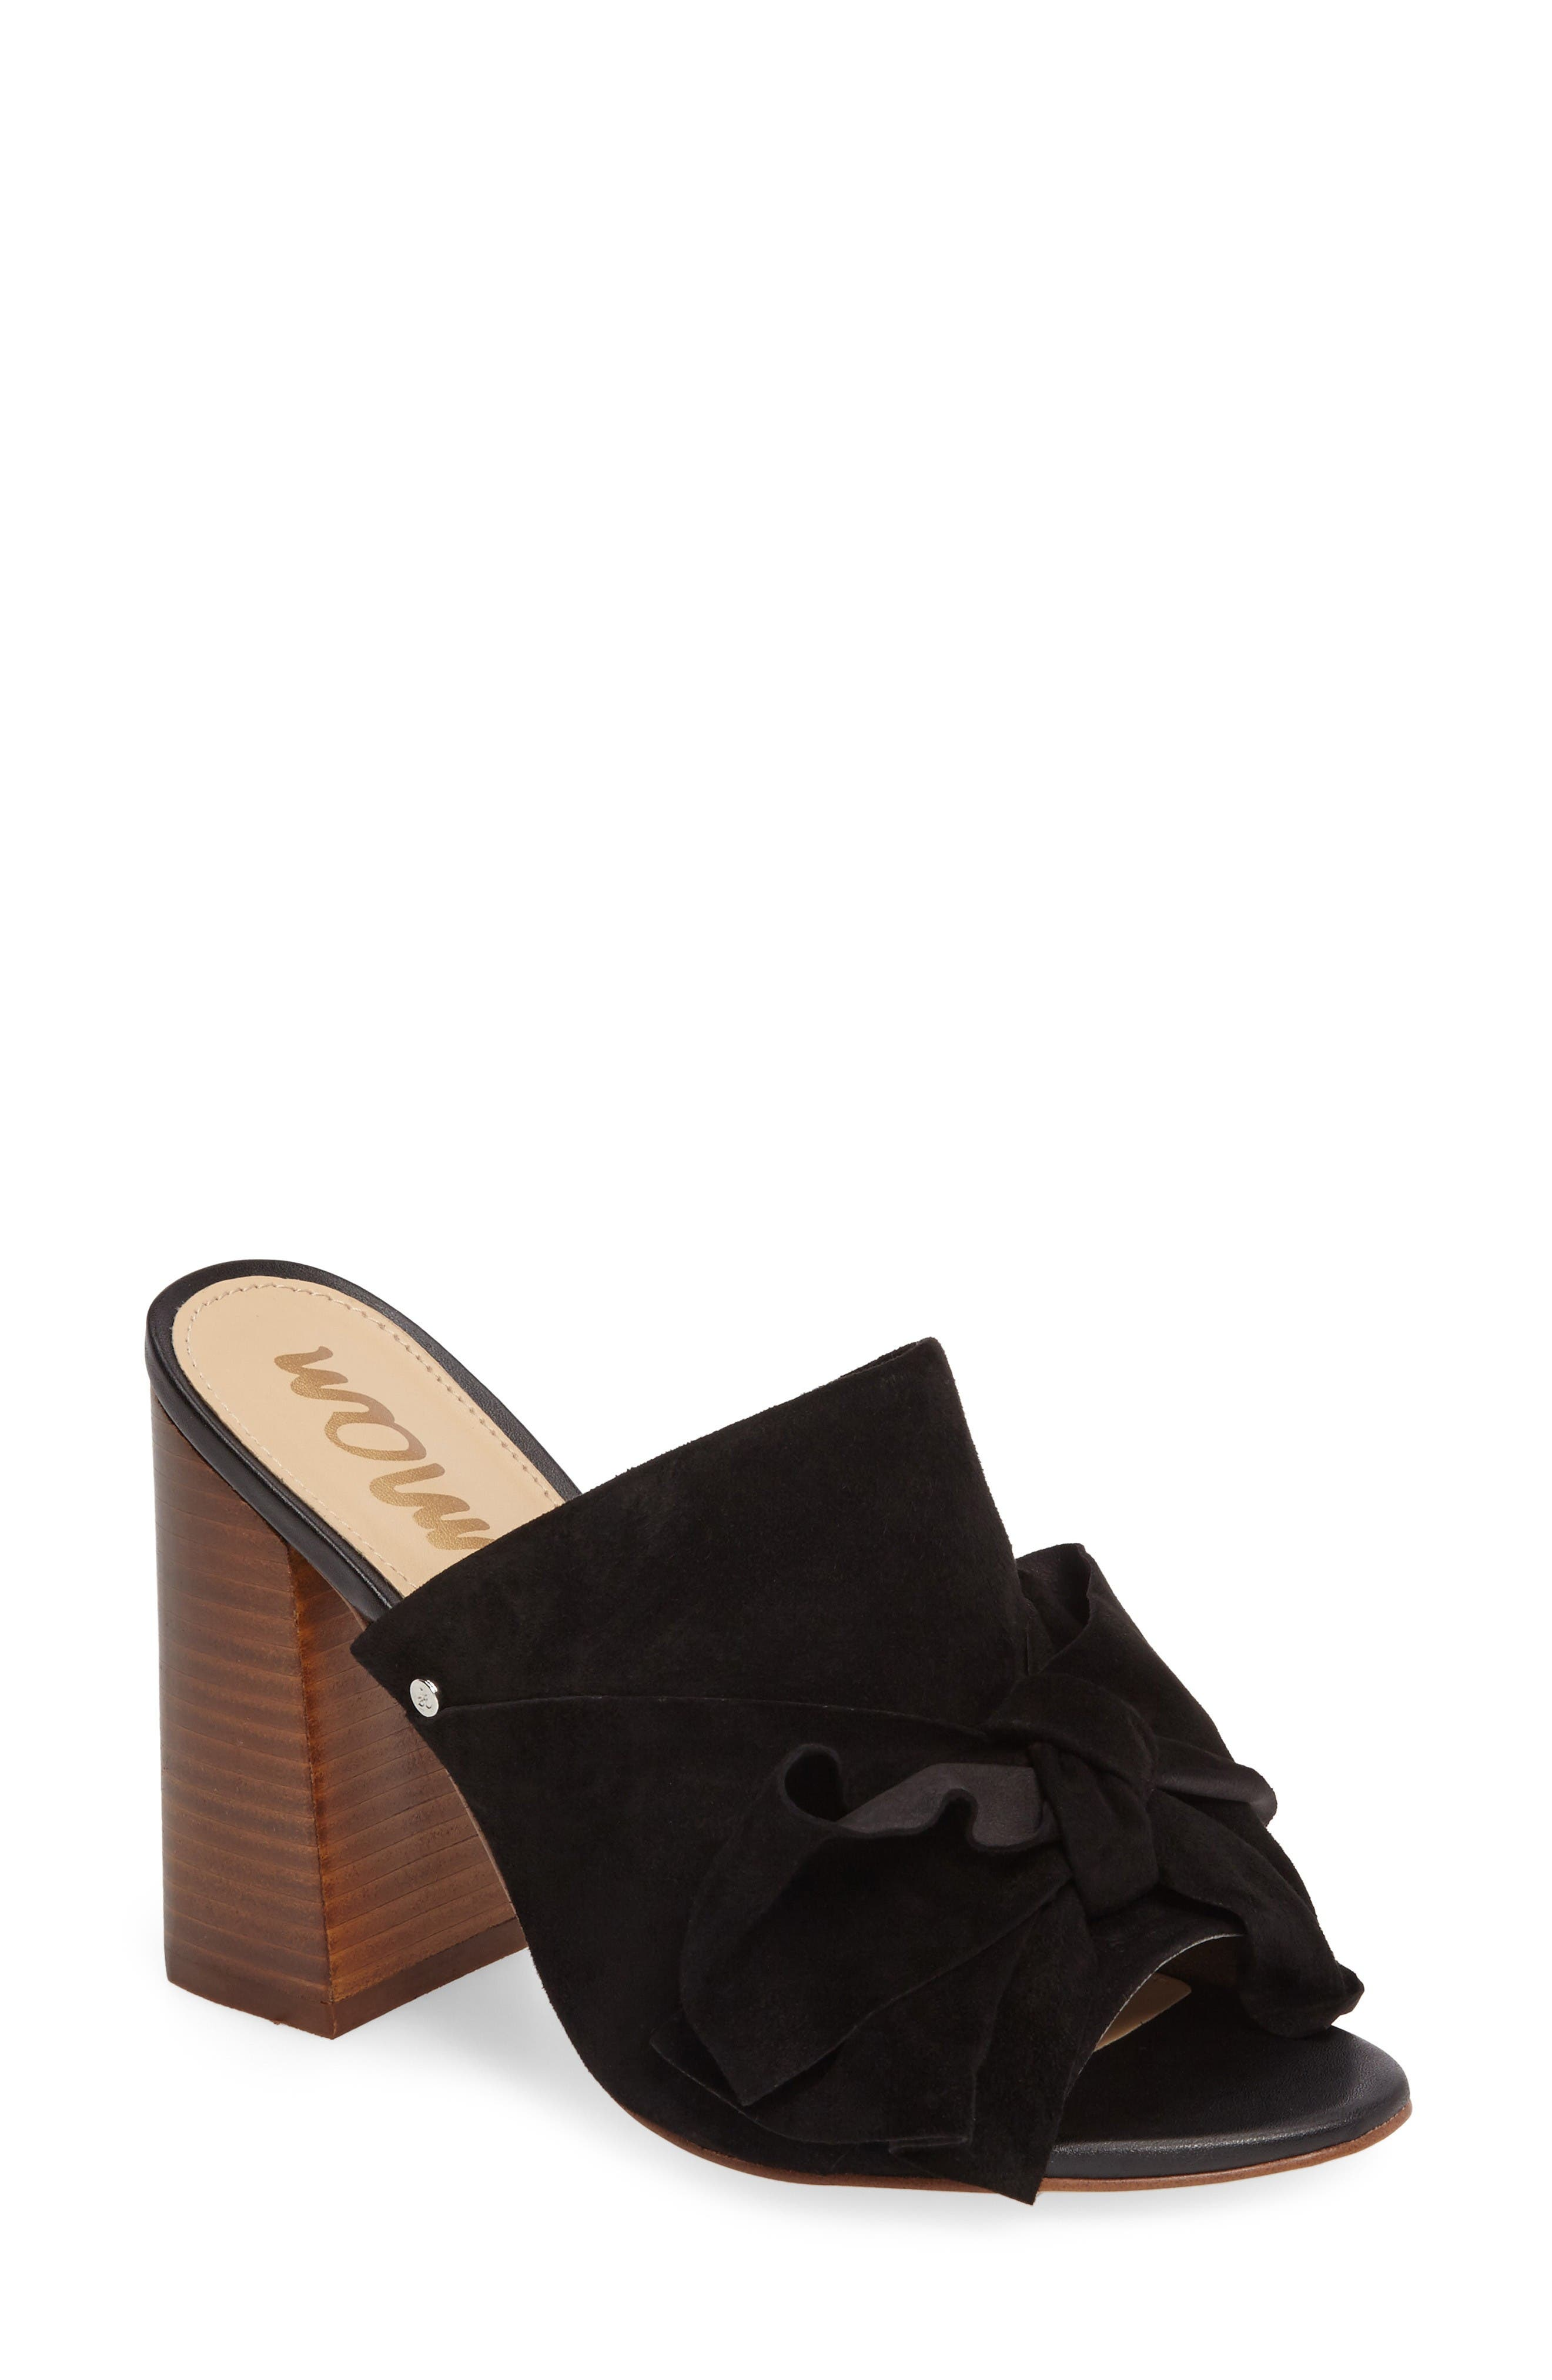 Yumi Bow Mule,                         Main,                         color, Black